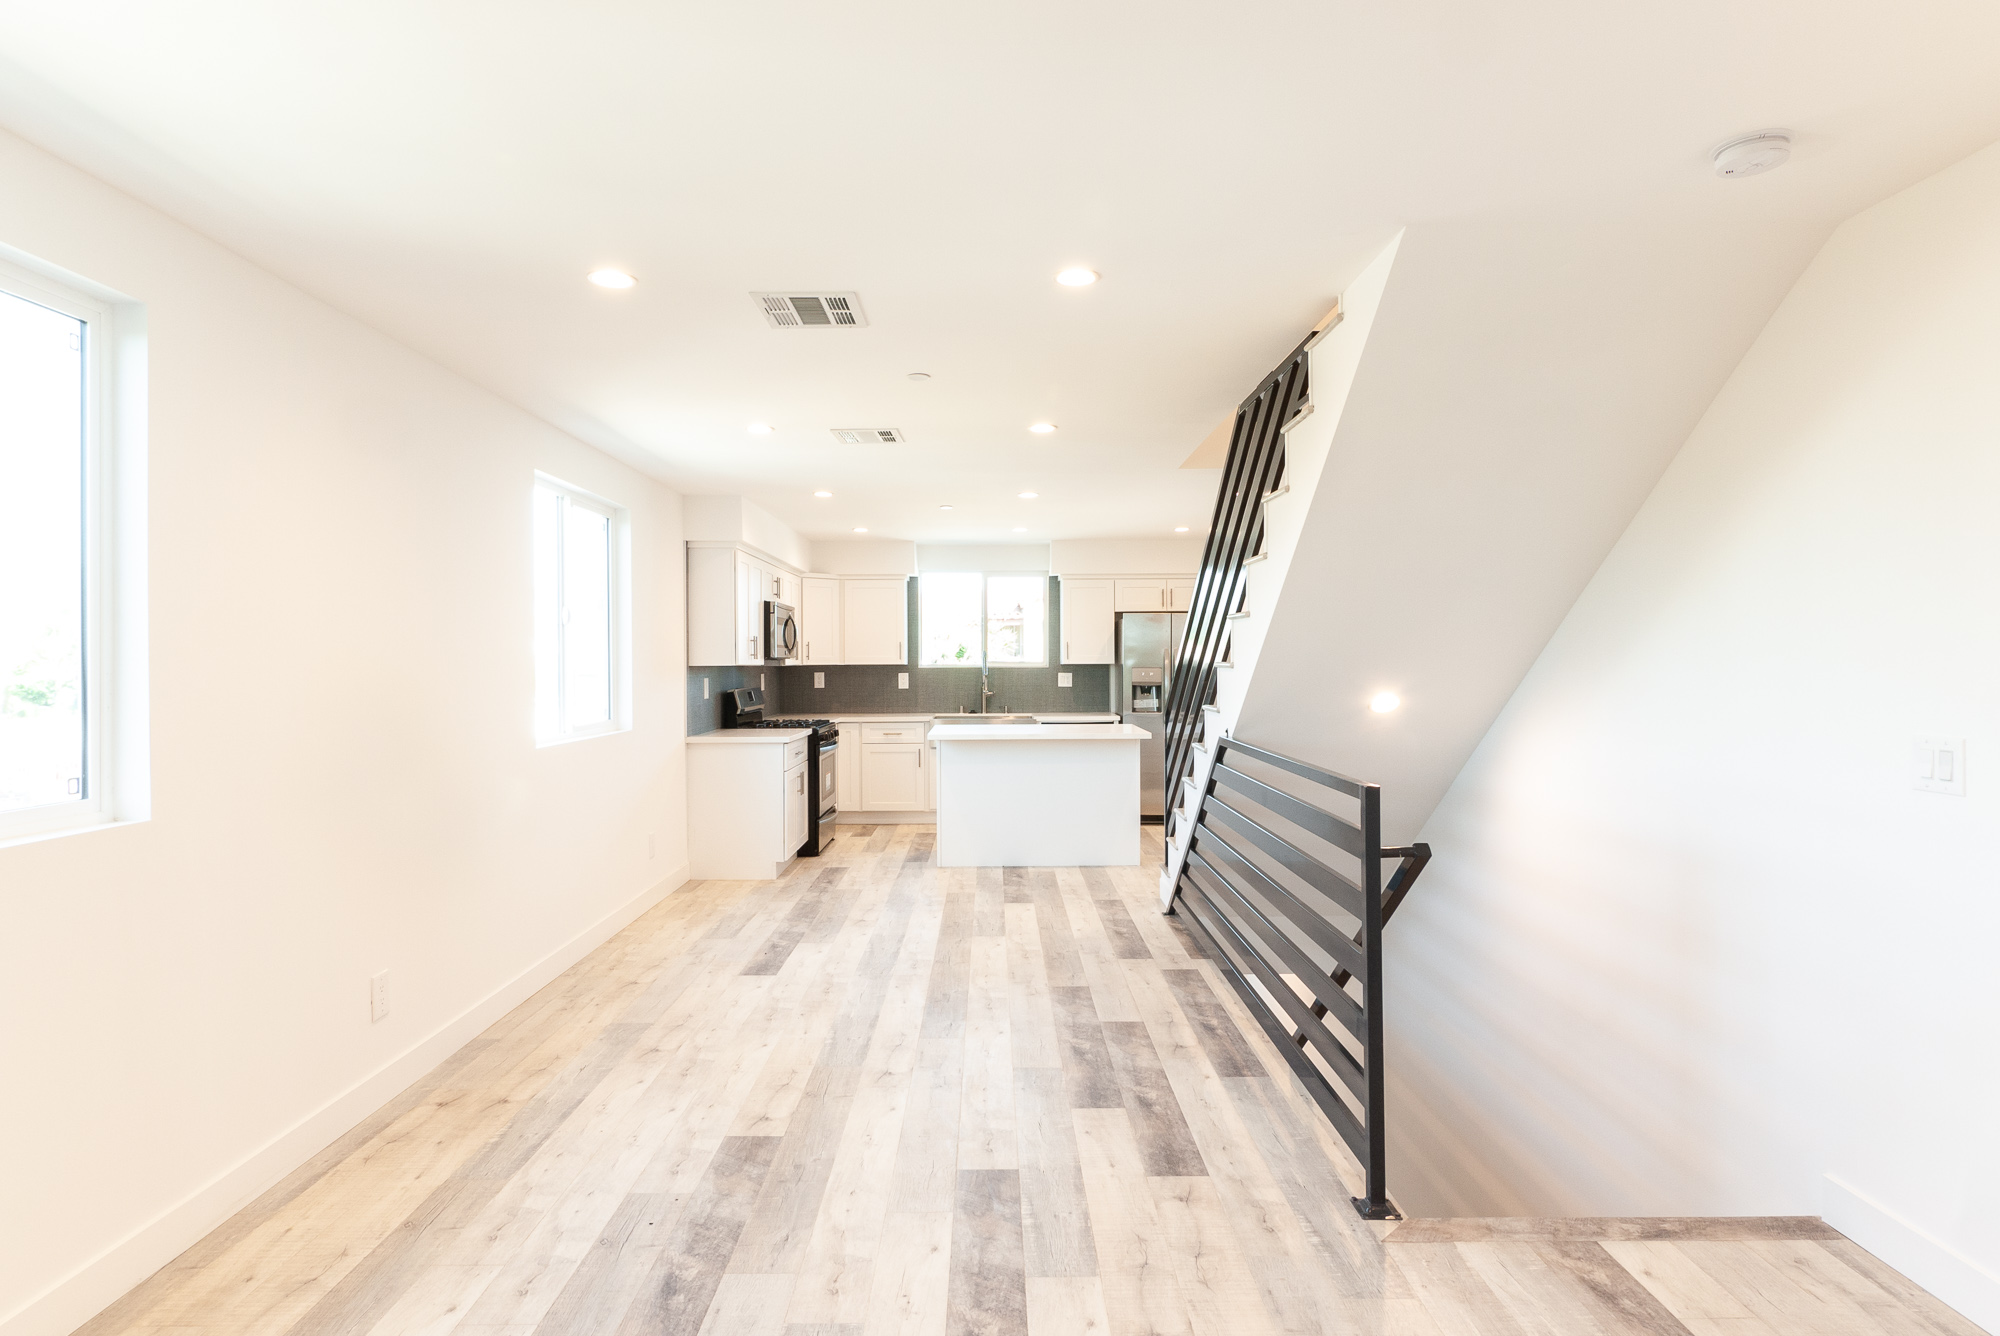 Brand New Build Done Right! Stunning 2 Story Townhouse - Central Air  & Heat - Open Kitchen with Farmhouse Sink - 2 Car Parking Garage- Central Location!